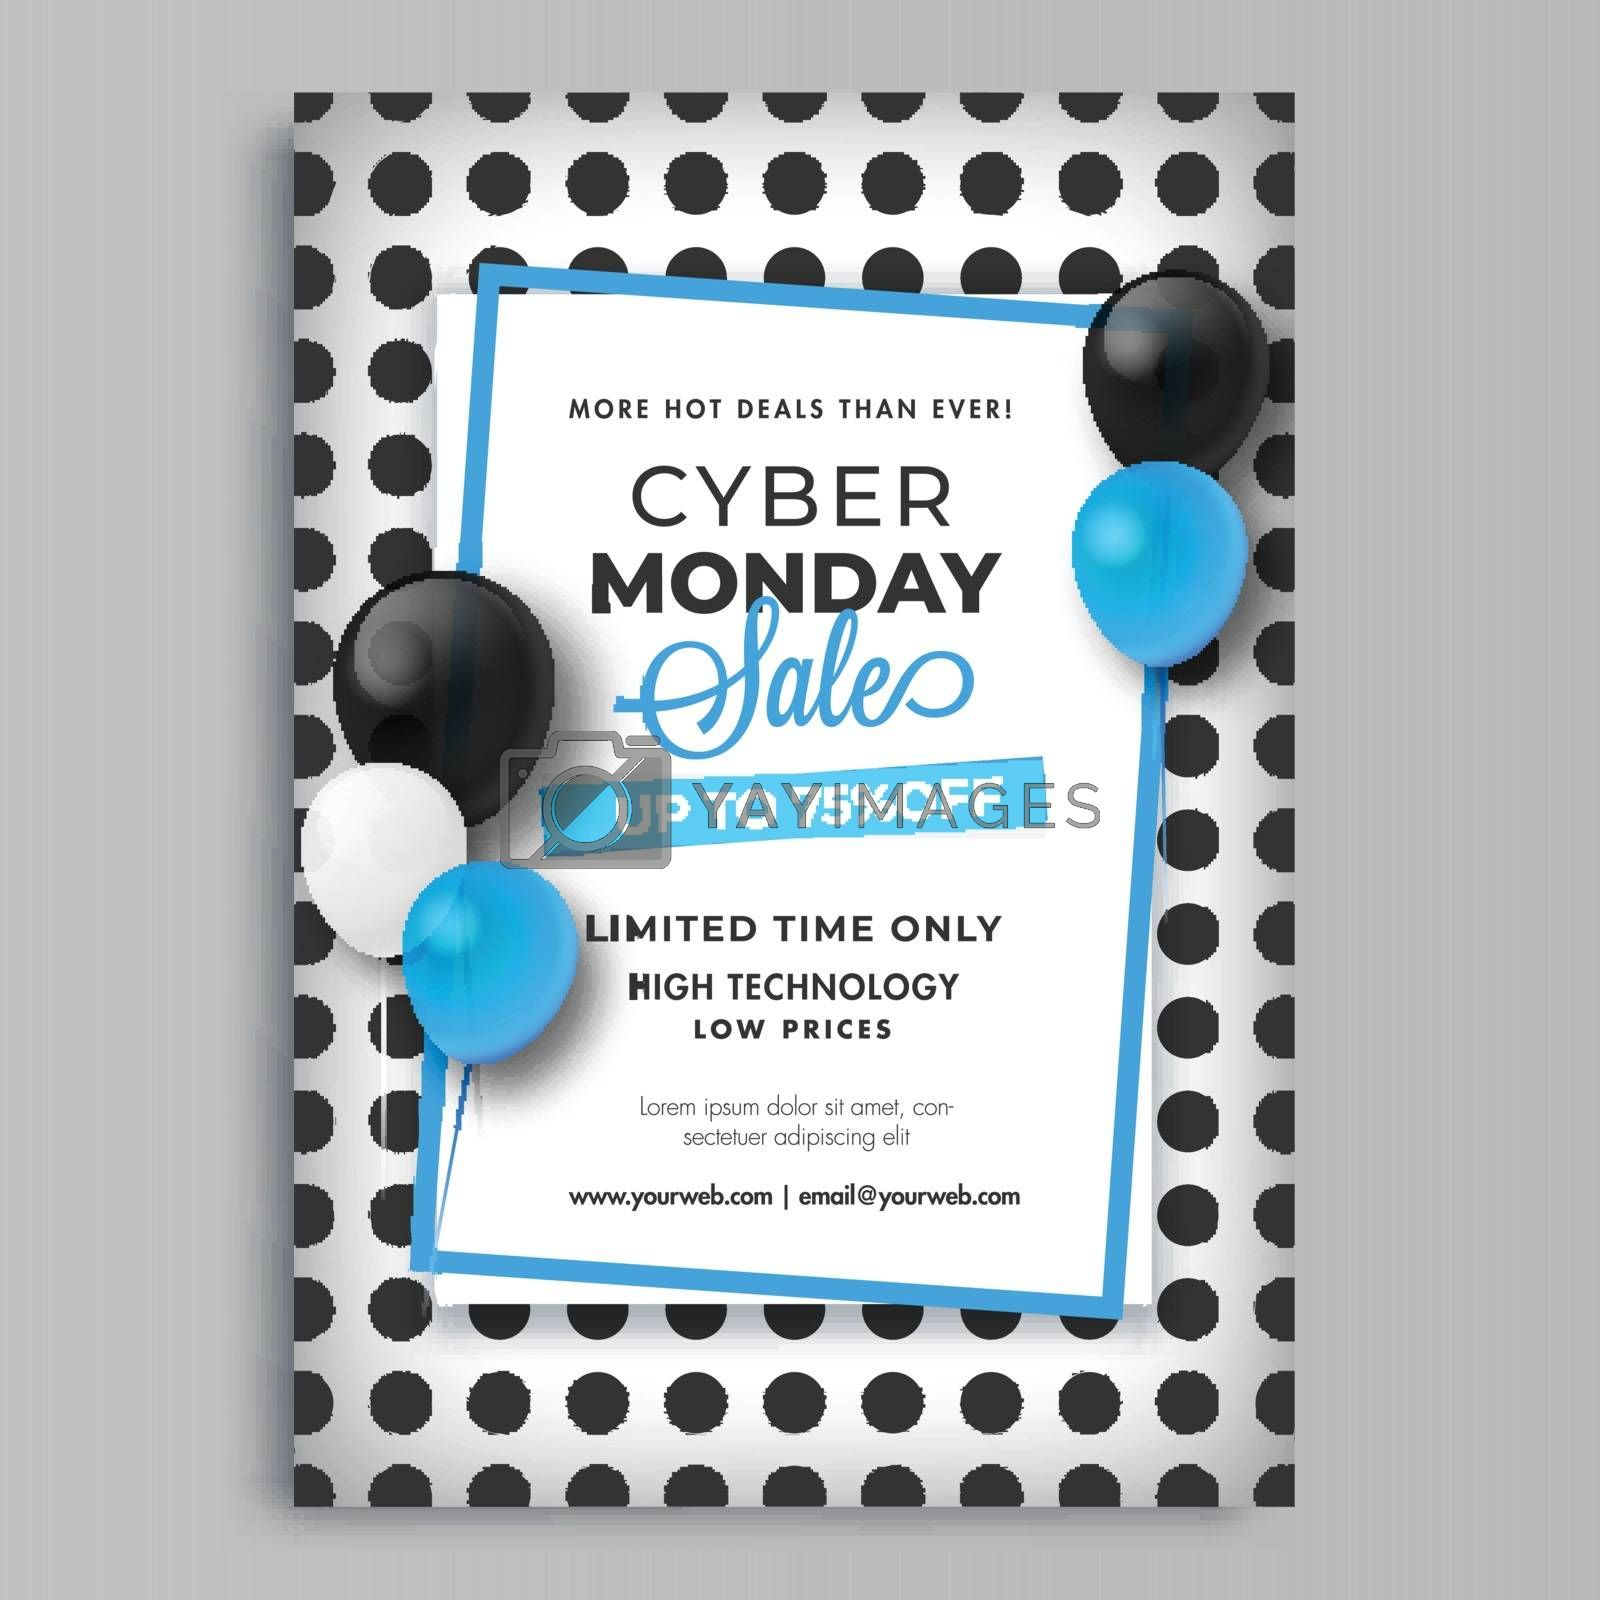 Cyber Monday Sale template with 75% discount offer and decorative with balloons on polka dots background.